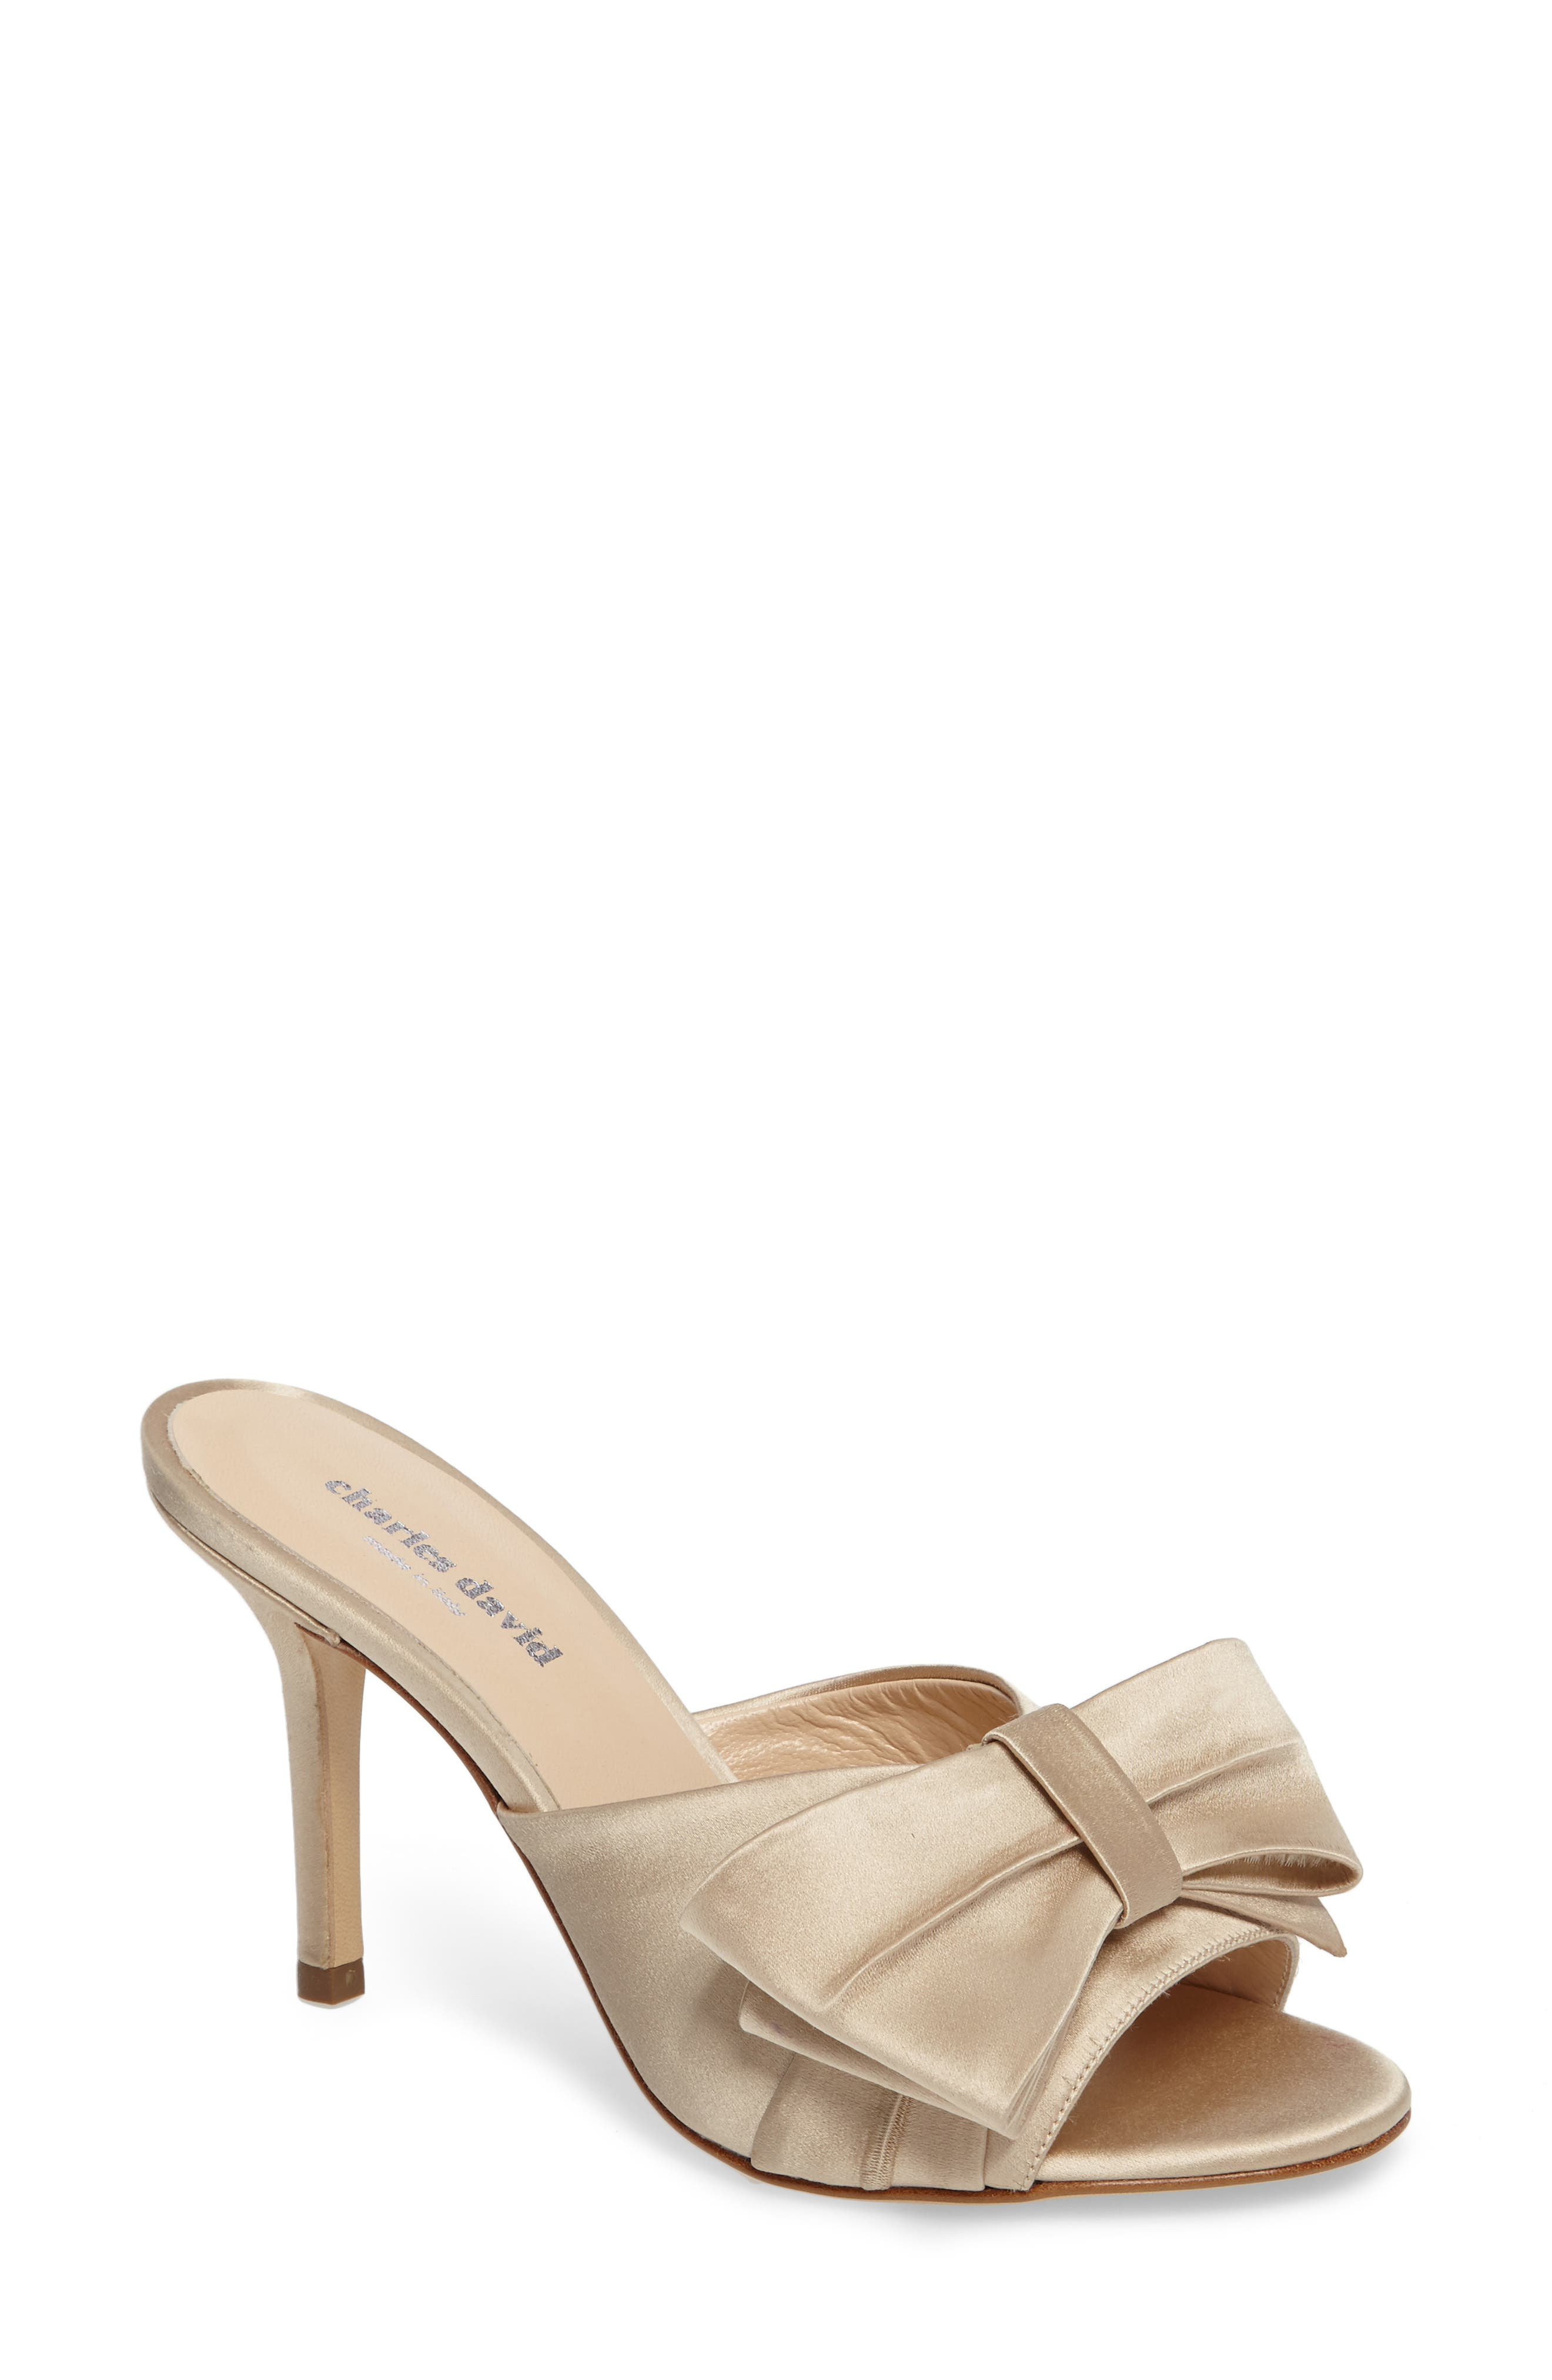 Alternate Image 1 Selected - Charles David Sasha Asymmetrical Bow Mule (Women)